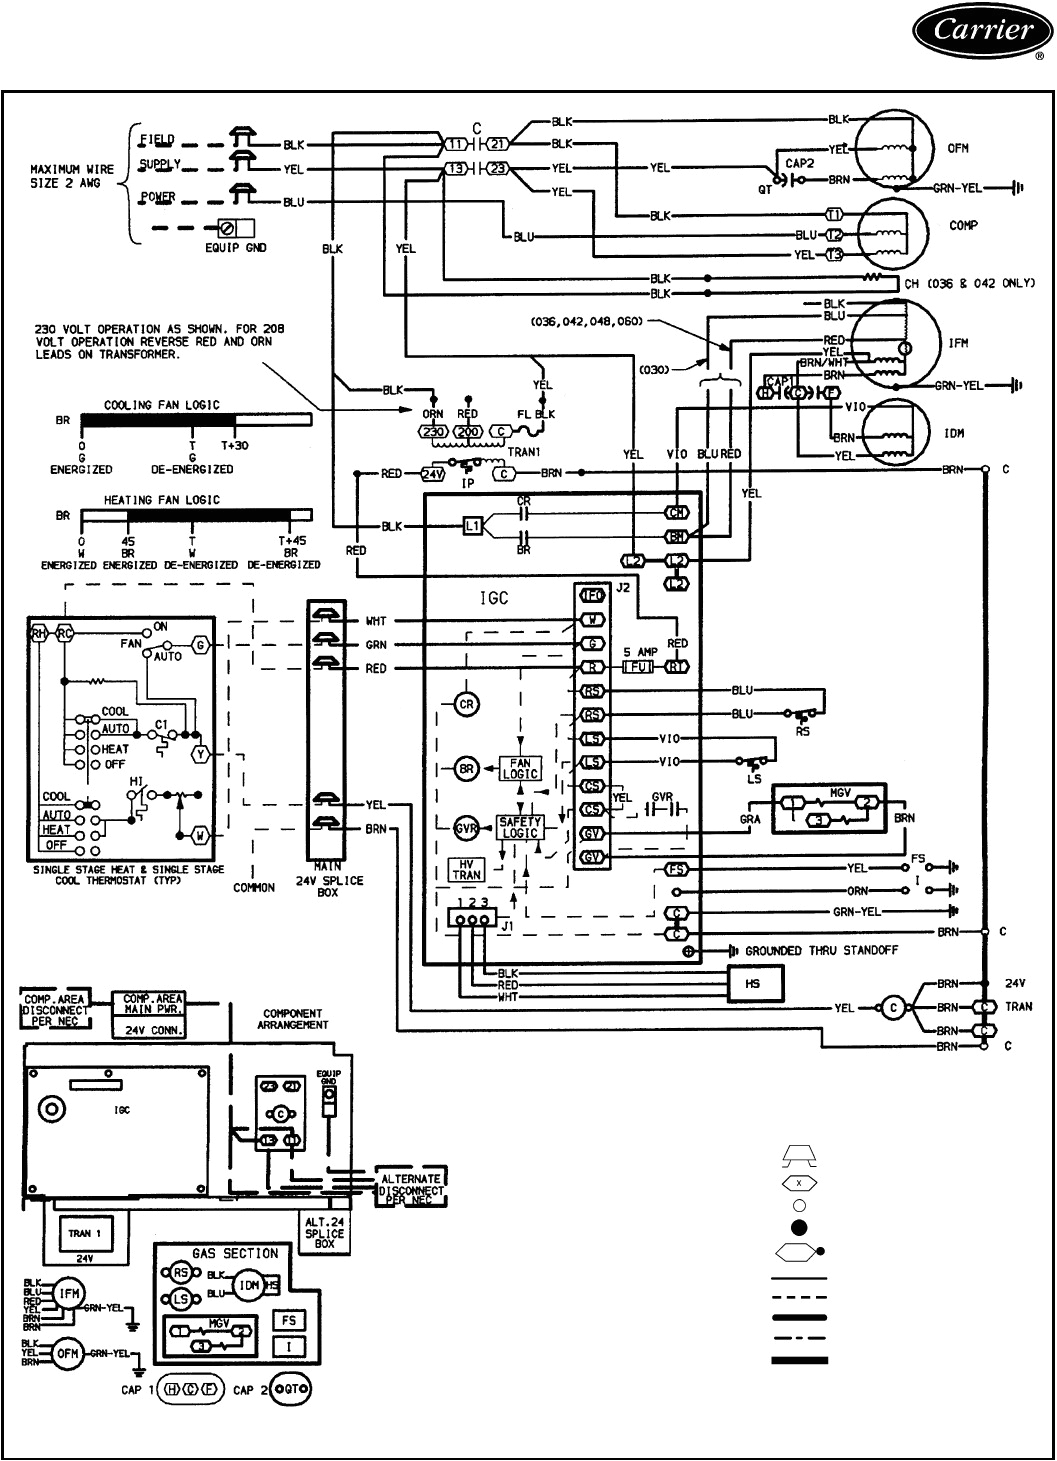 rooftop unit schematic wiring diagram carrier unit wiring wiring diagram showcarrier wiring diagrams wiring diagram ame